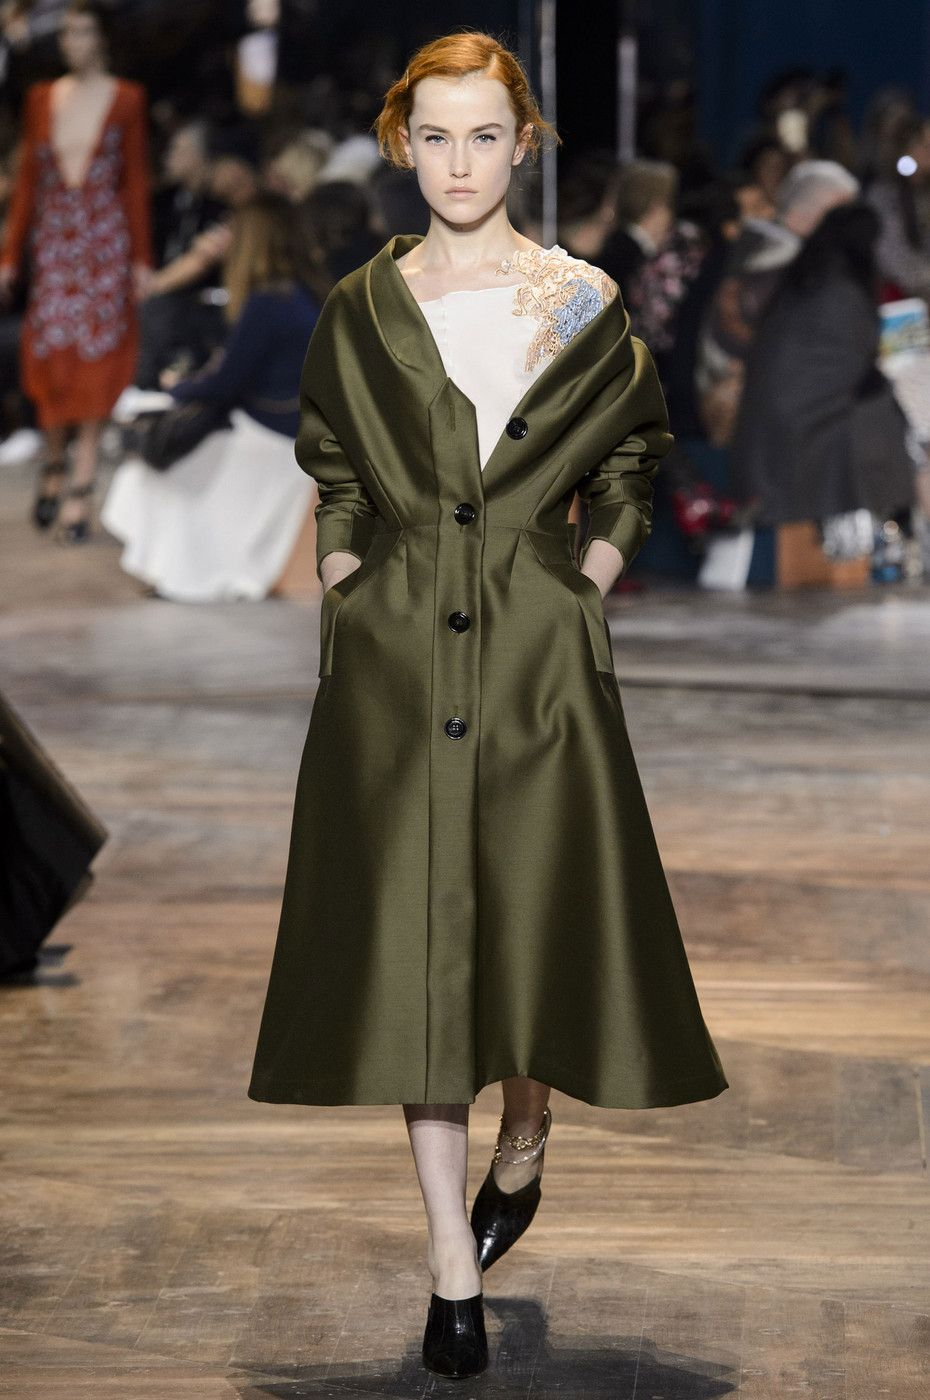 Christian Dior Spring 2016 Couture by Lucie Meier and Serge Ruffieux